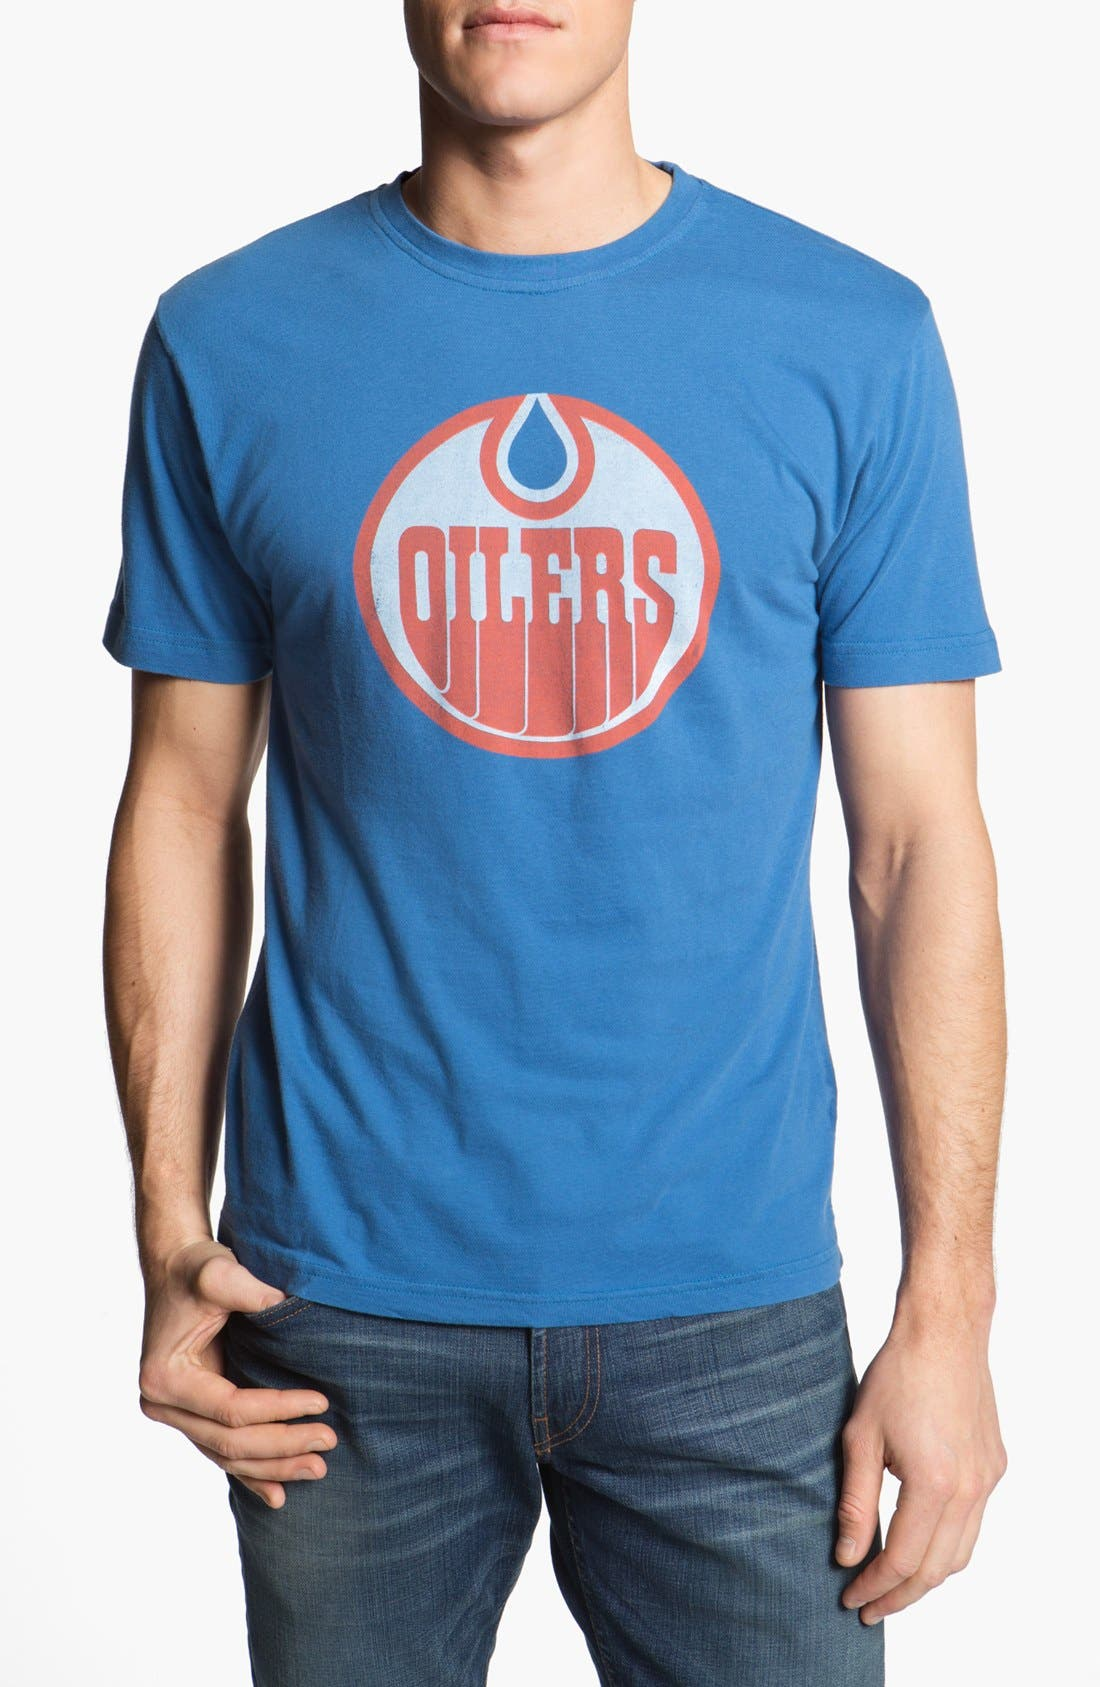 Alternate Image 1 Selected - Red Jacket 'Oilers - Brass Tacks' T-Shirt